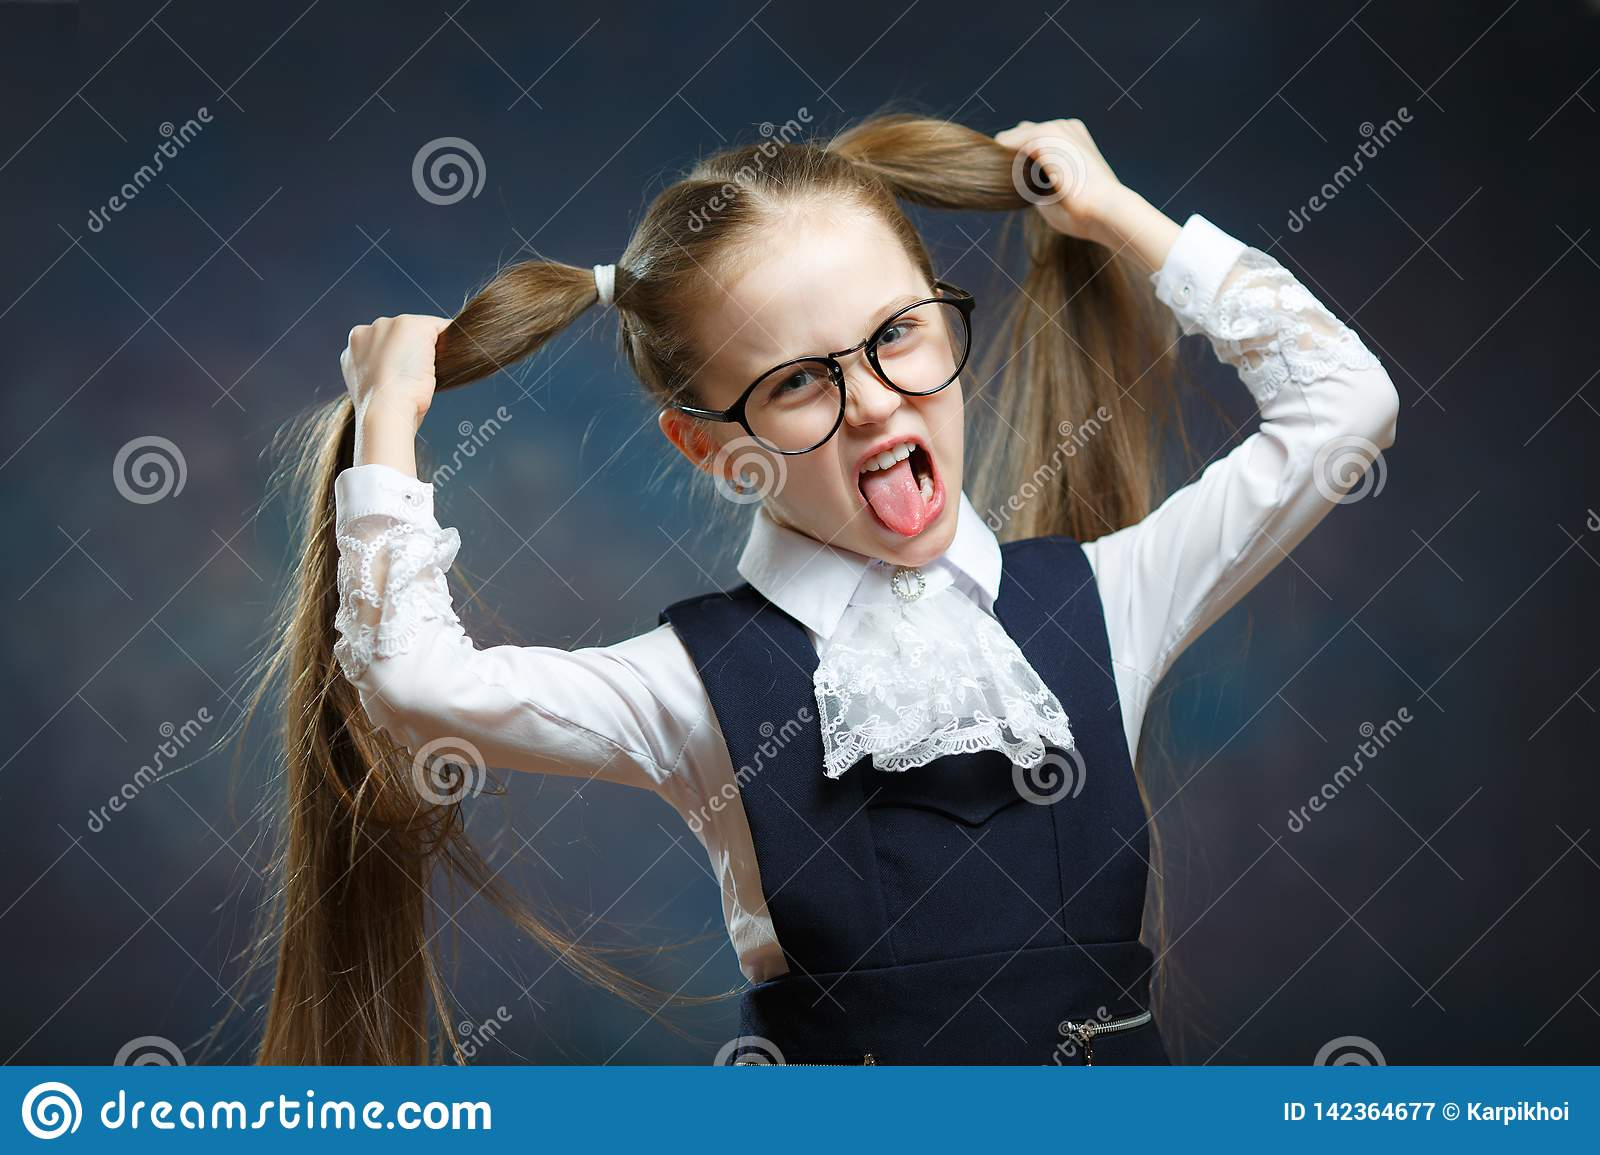 Schoolgirl Wear Uniform Glasses Play Ape Portrait